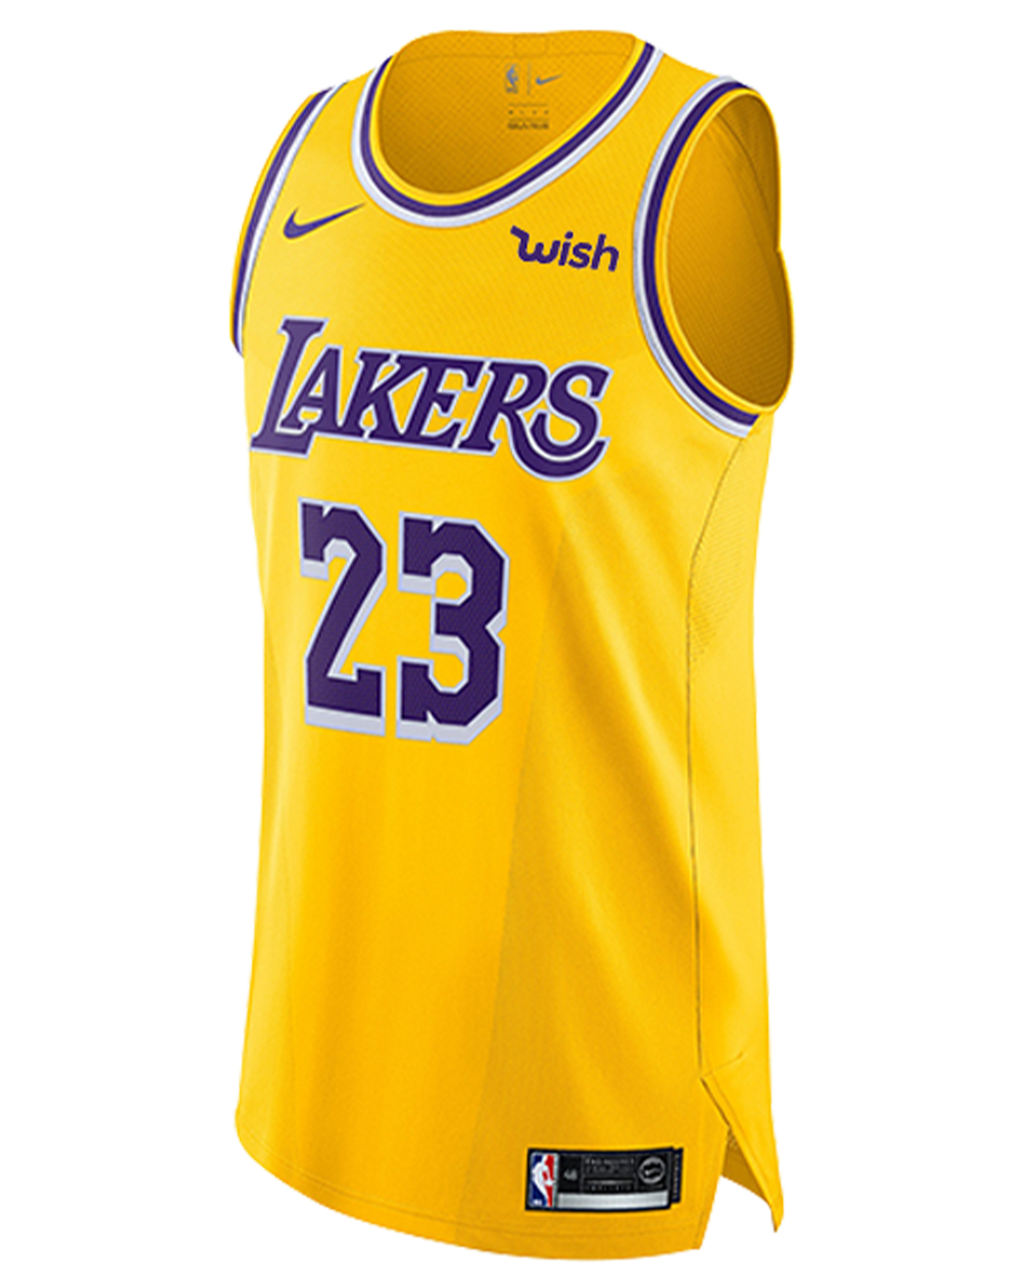 stitched lakers jersey Off 56% - www.bashhguidelines.org